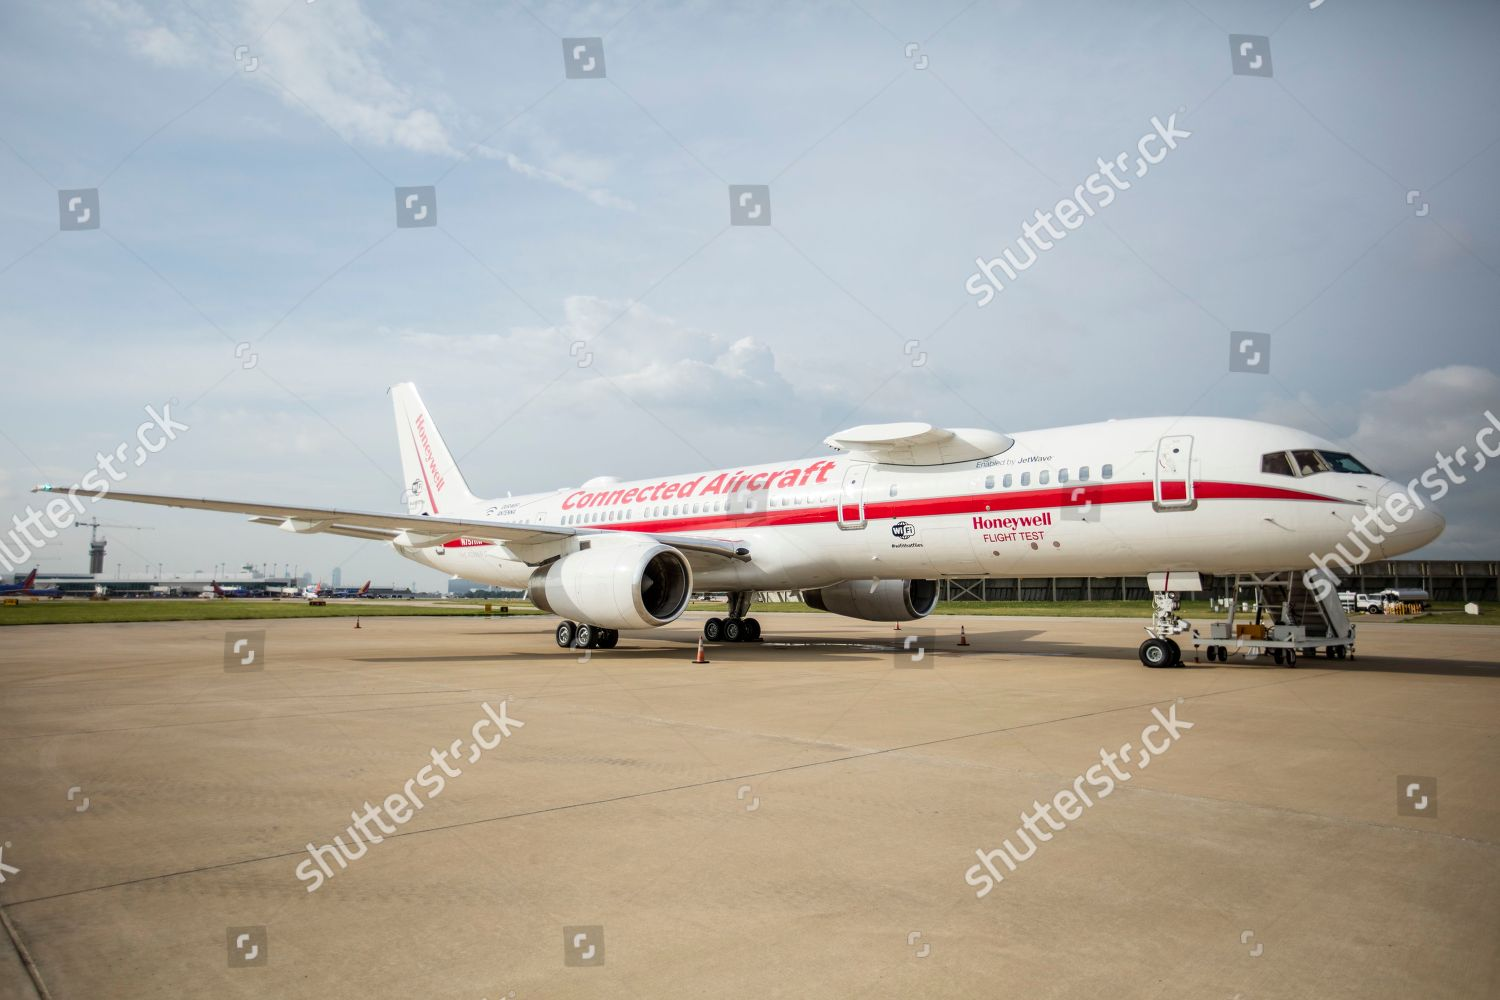 this image released full aircraft view Honeywell Editorial Stock